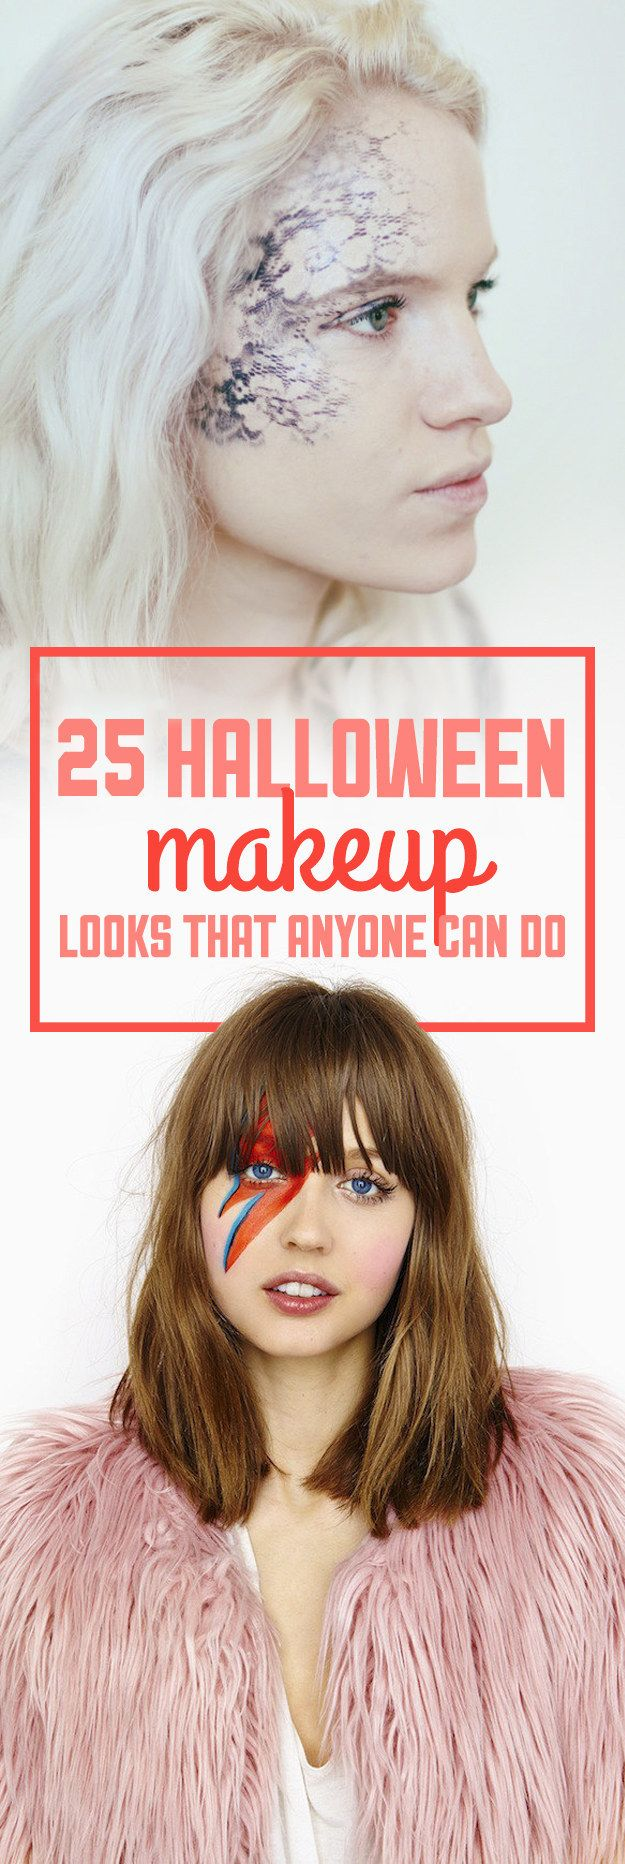 25%20Halloween%20Makeup%20Looks%20That%20Are%20Actually%20Easy